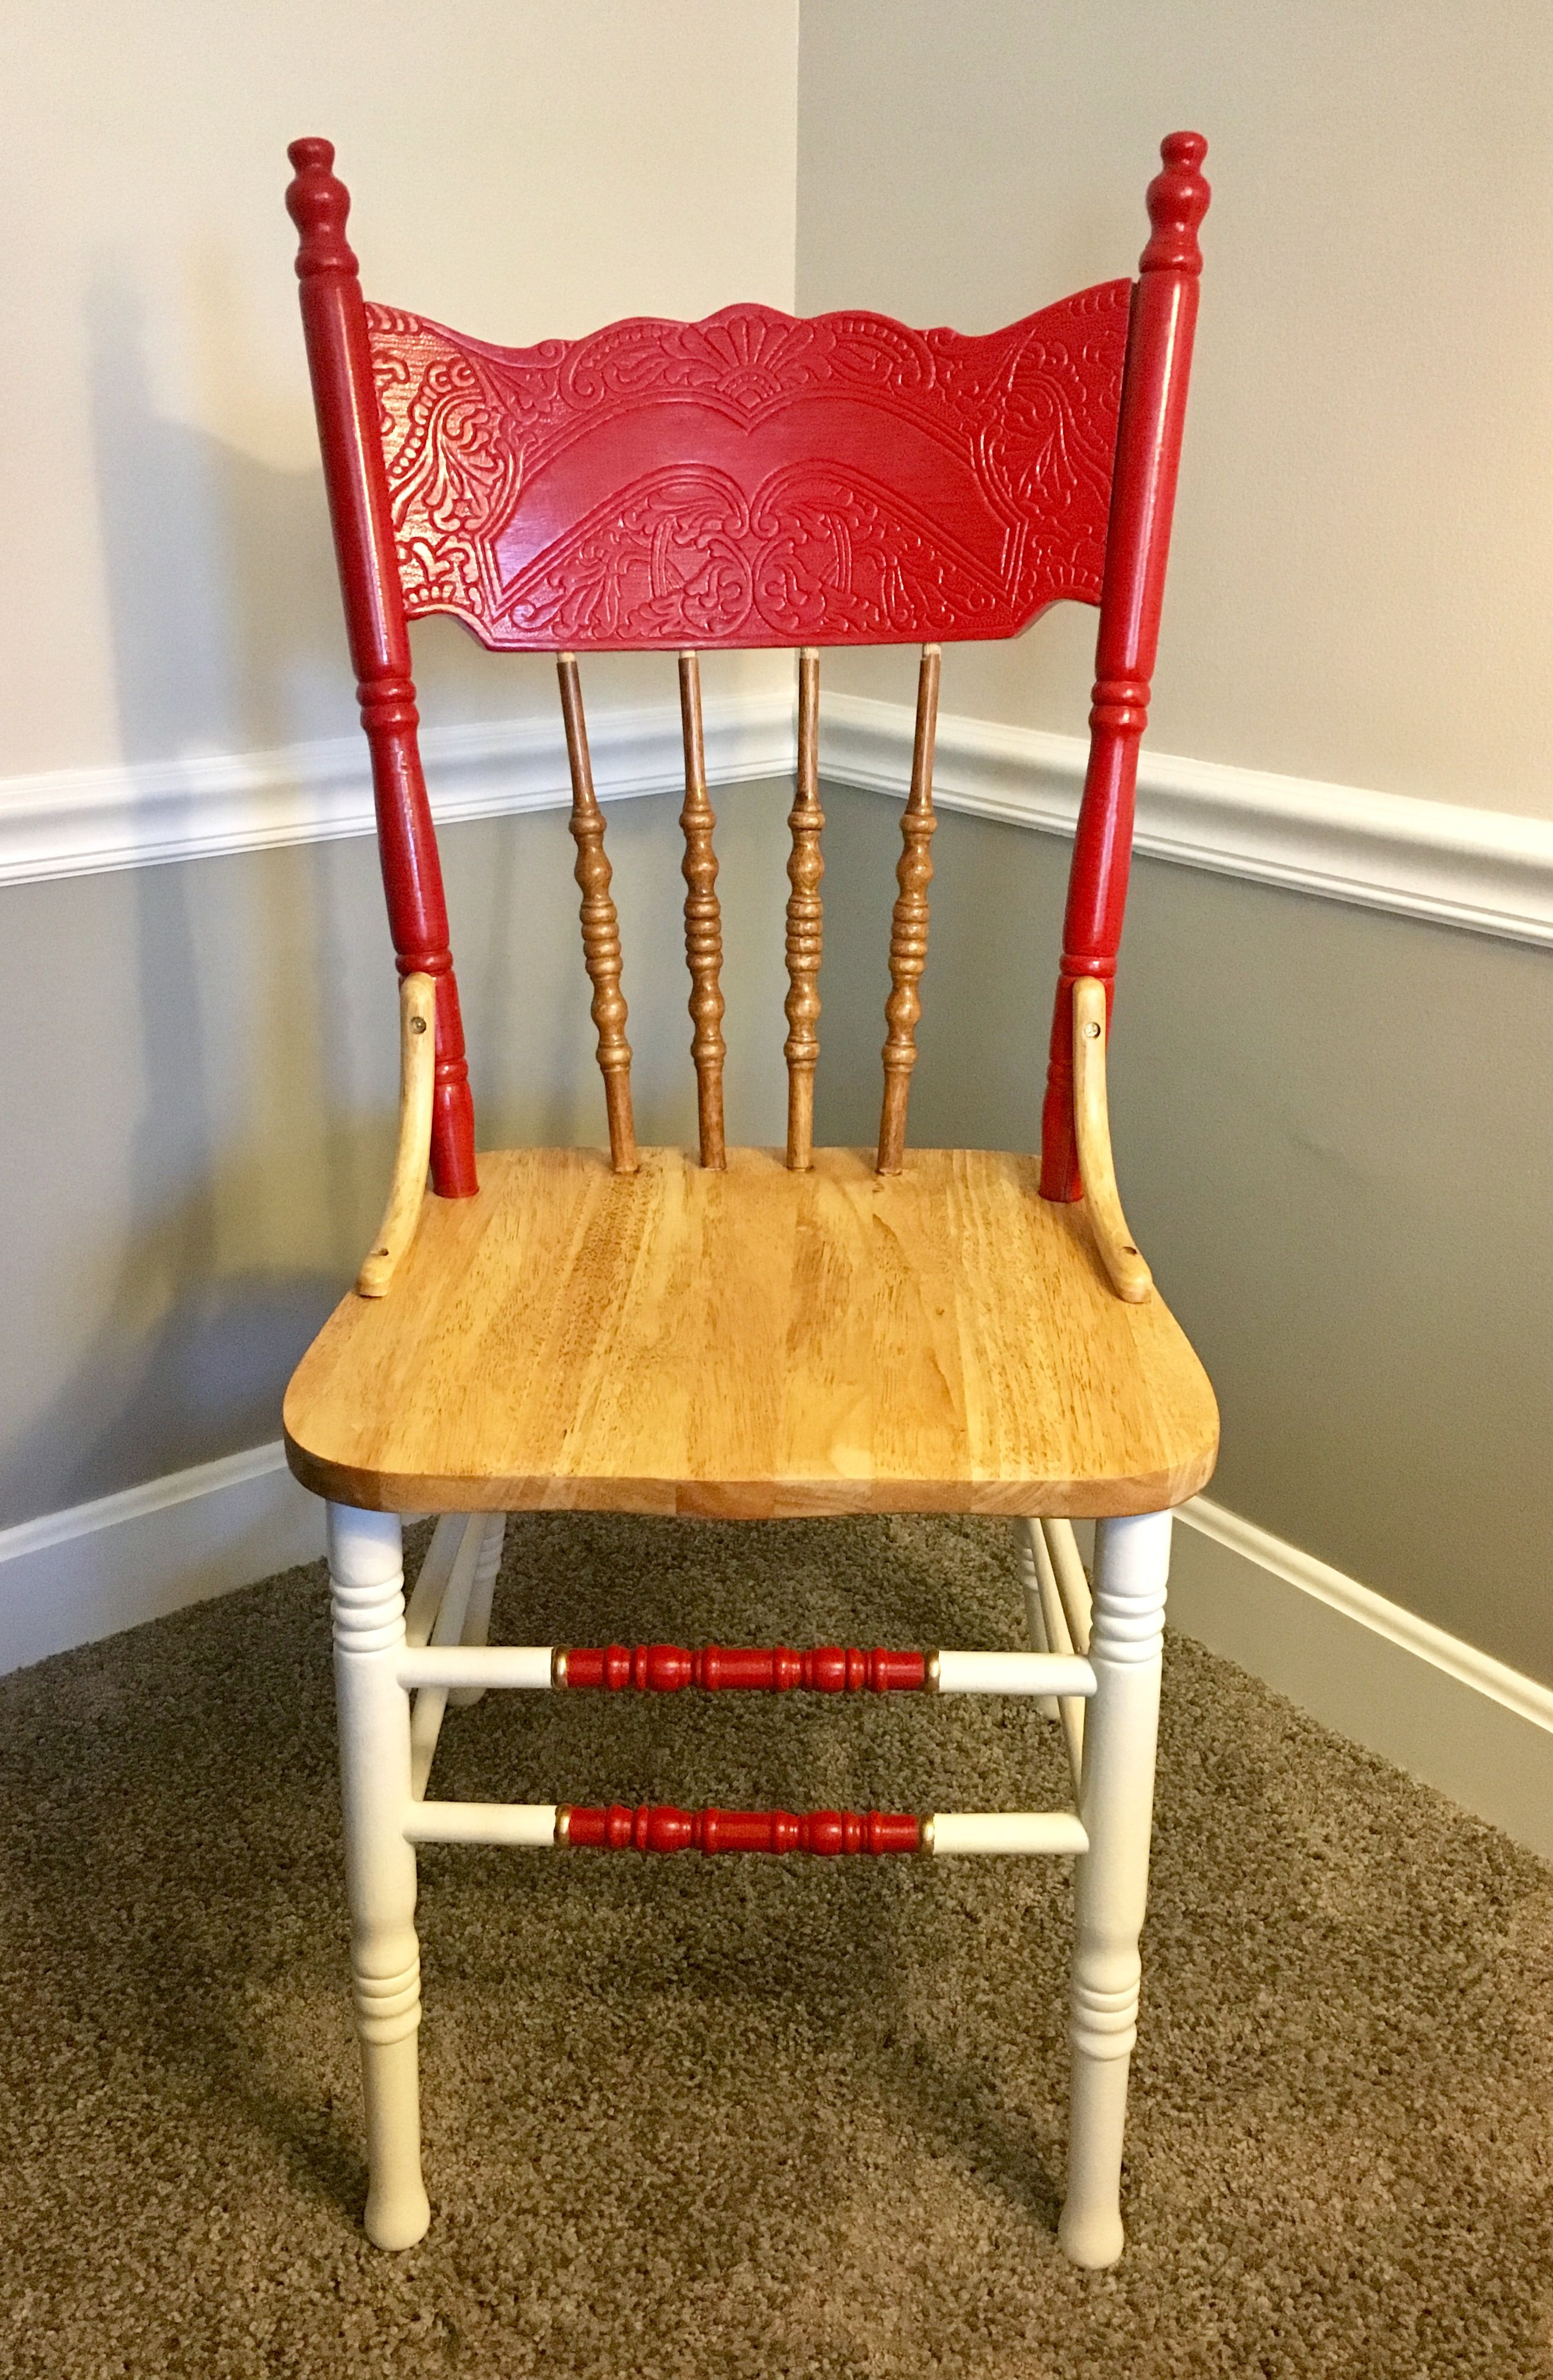 Antique farm wooden chair refinished with antique white golden and red colors ? & Antique farm wooden chair refinished with antique white golden and ...